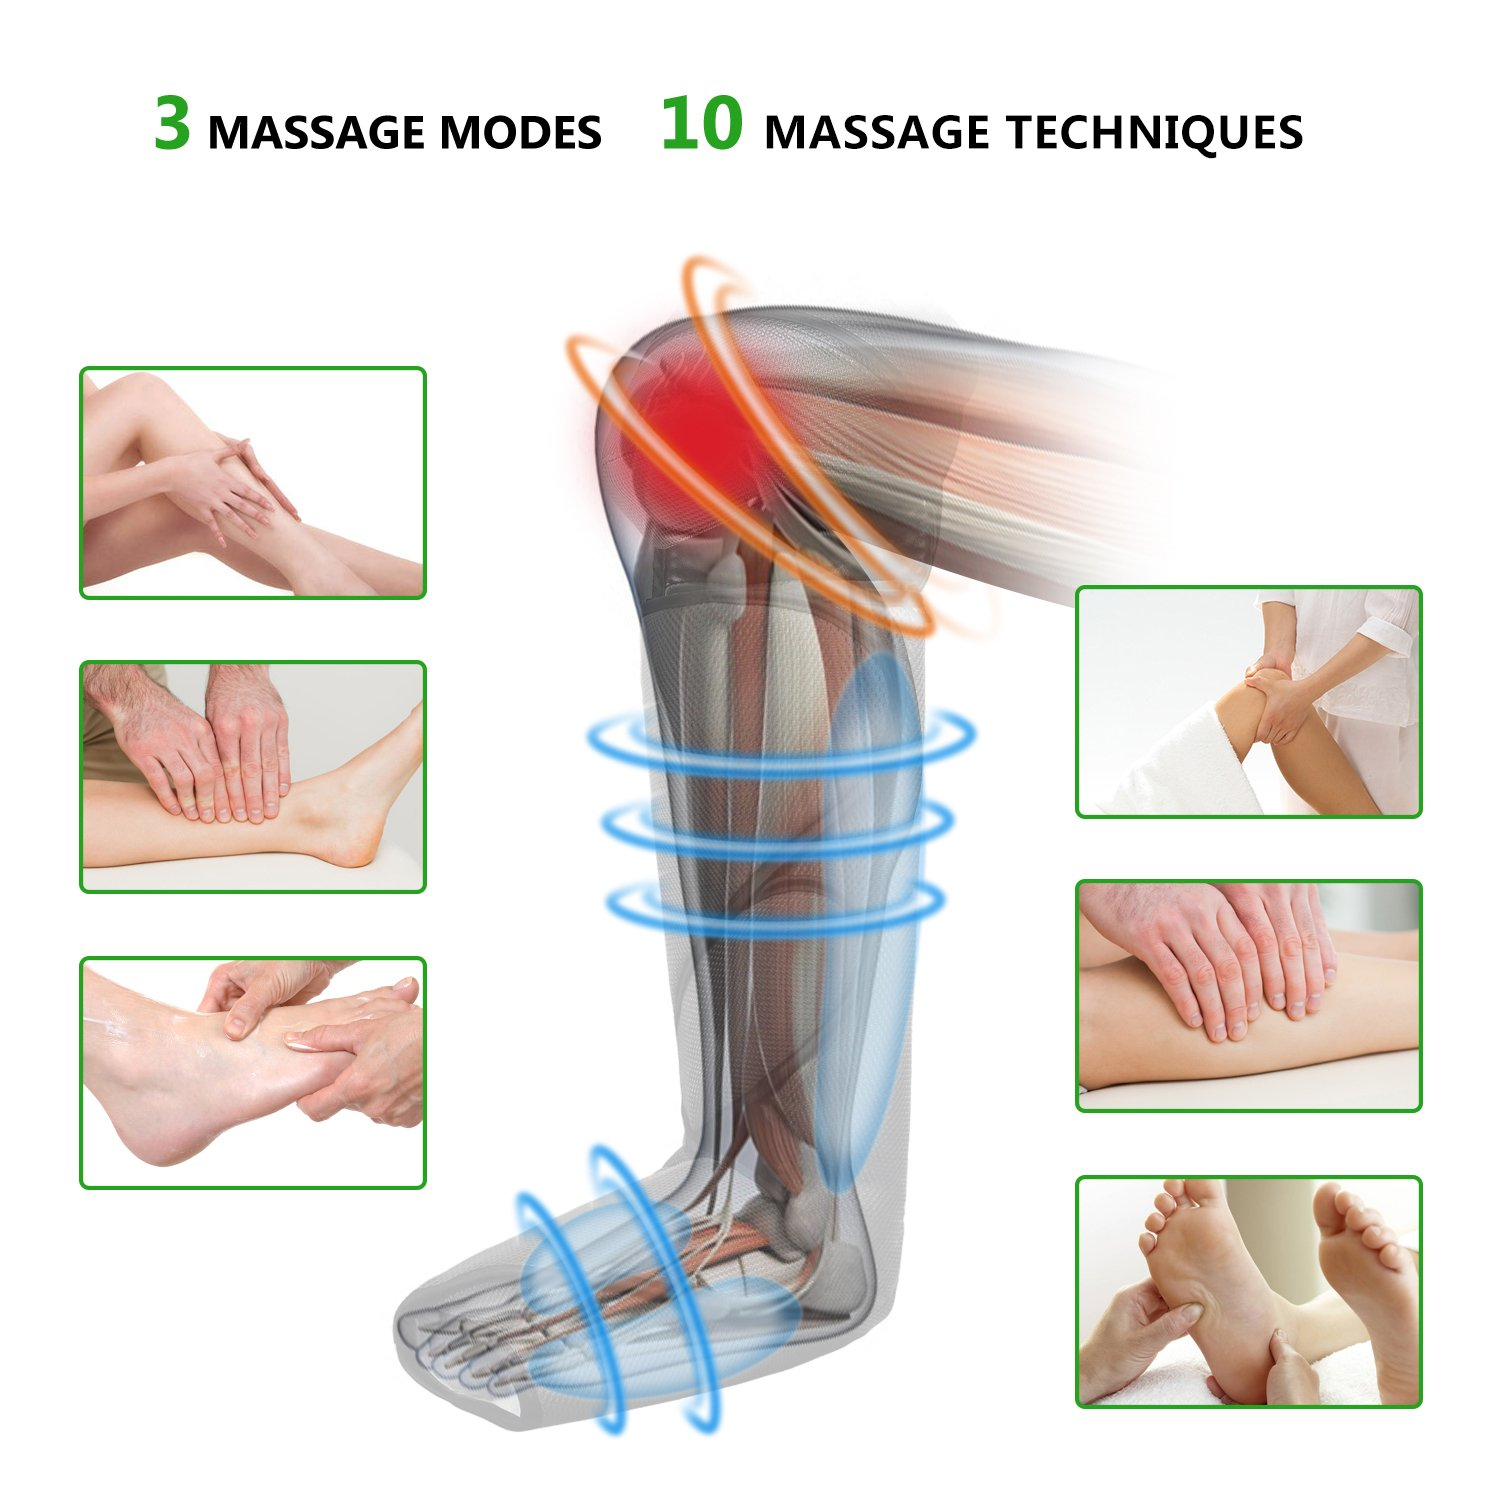 FIT KING Leg & Foot Air Massager and Knee Warmer for Foot Calf and Knee Circulation Massage with Size Extensions and 3 Modes 3 Intensities by FIT KING (Image #4)